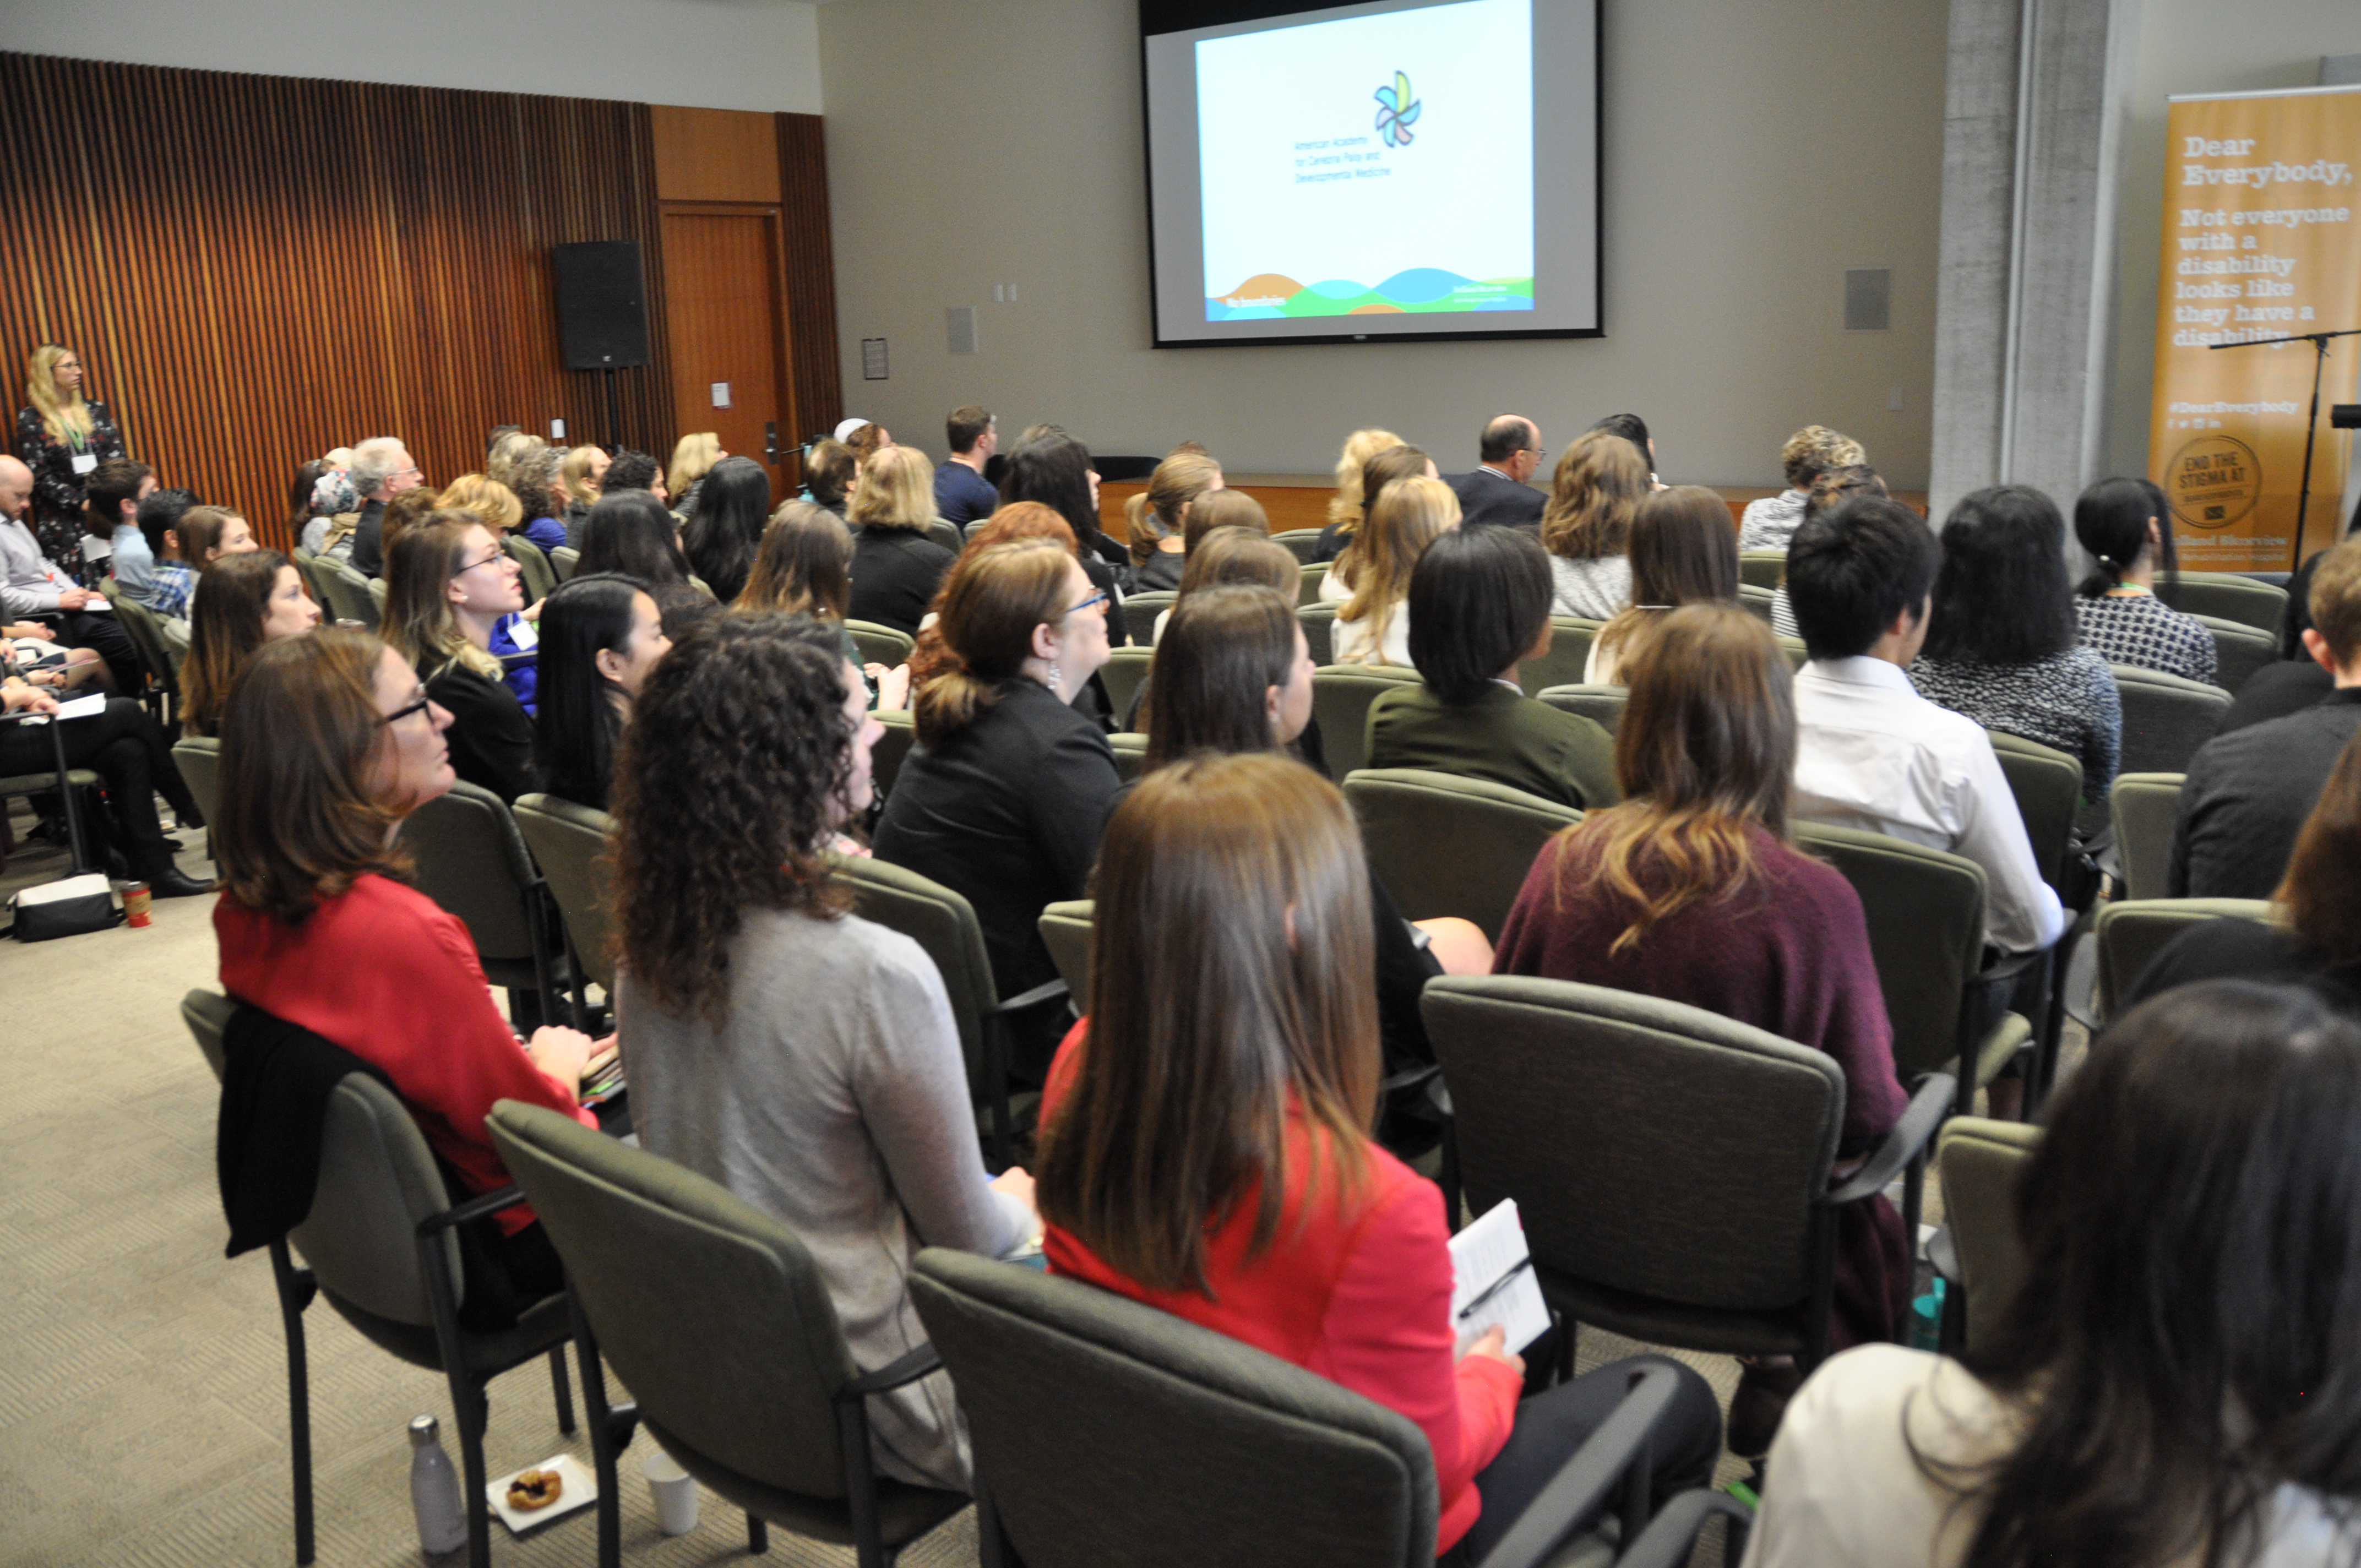 Audience captivated by engaging research talks